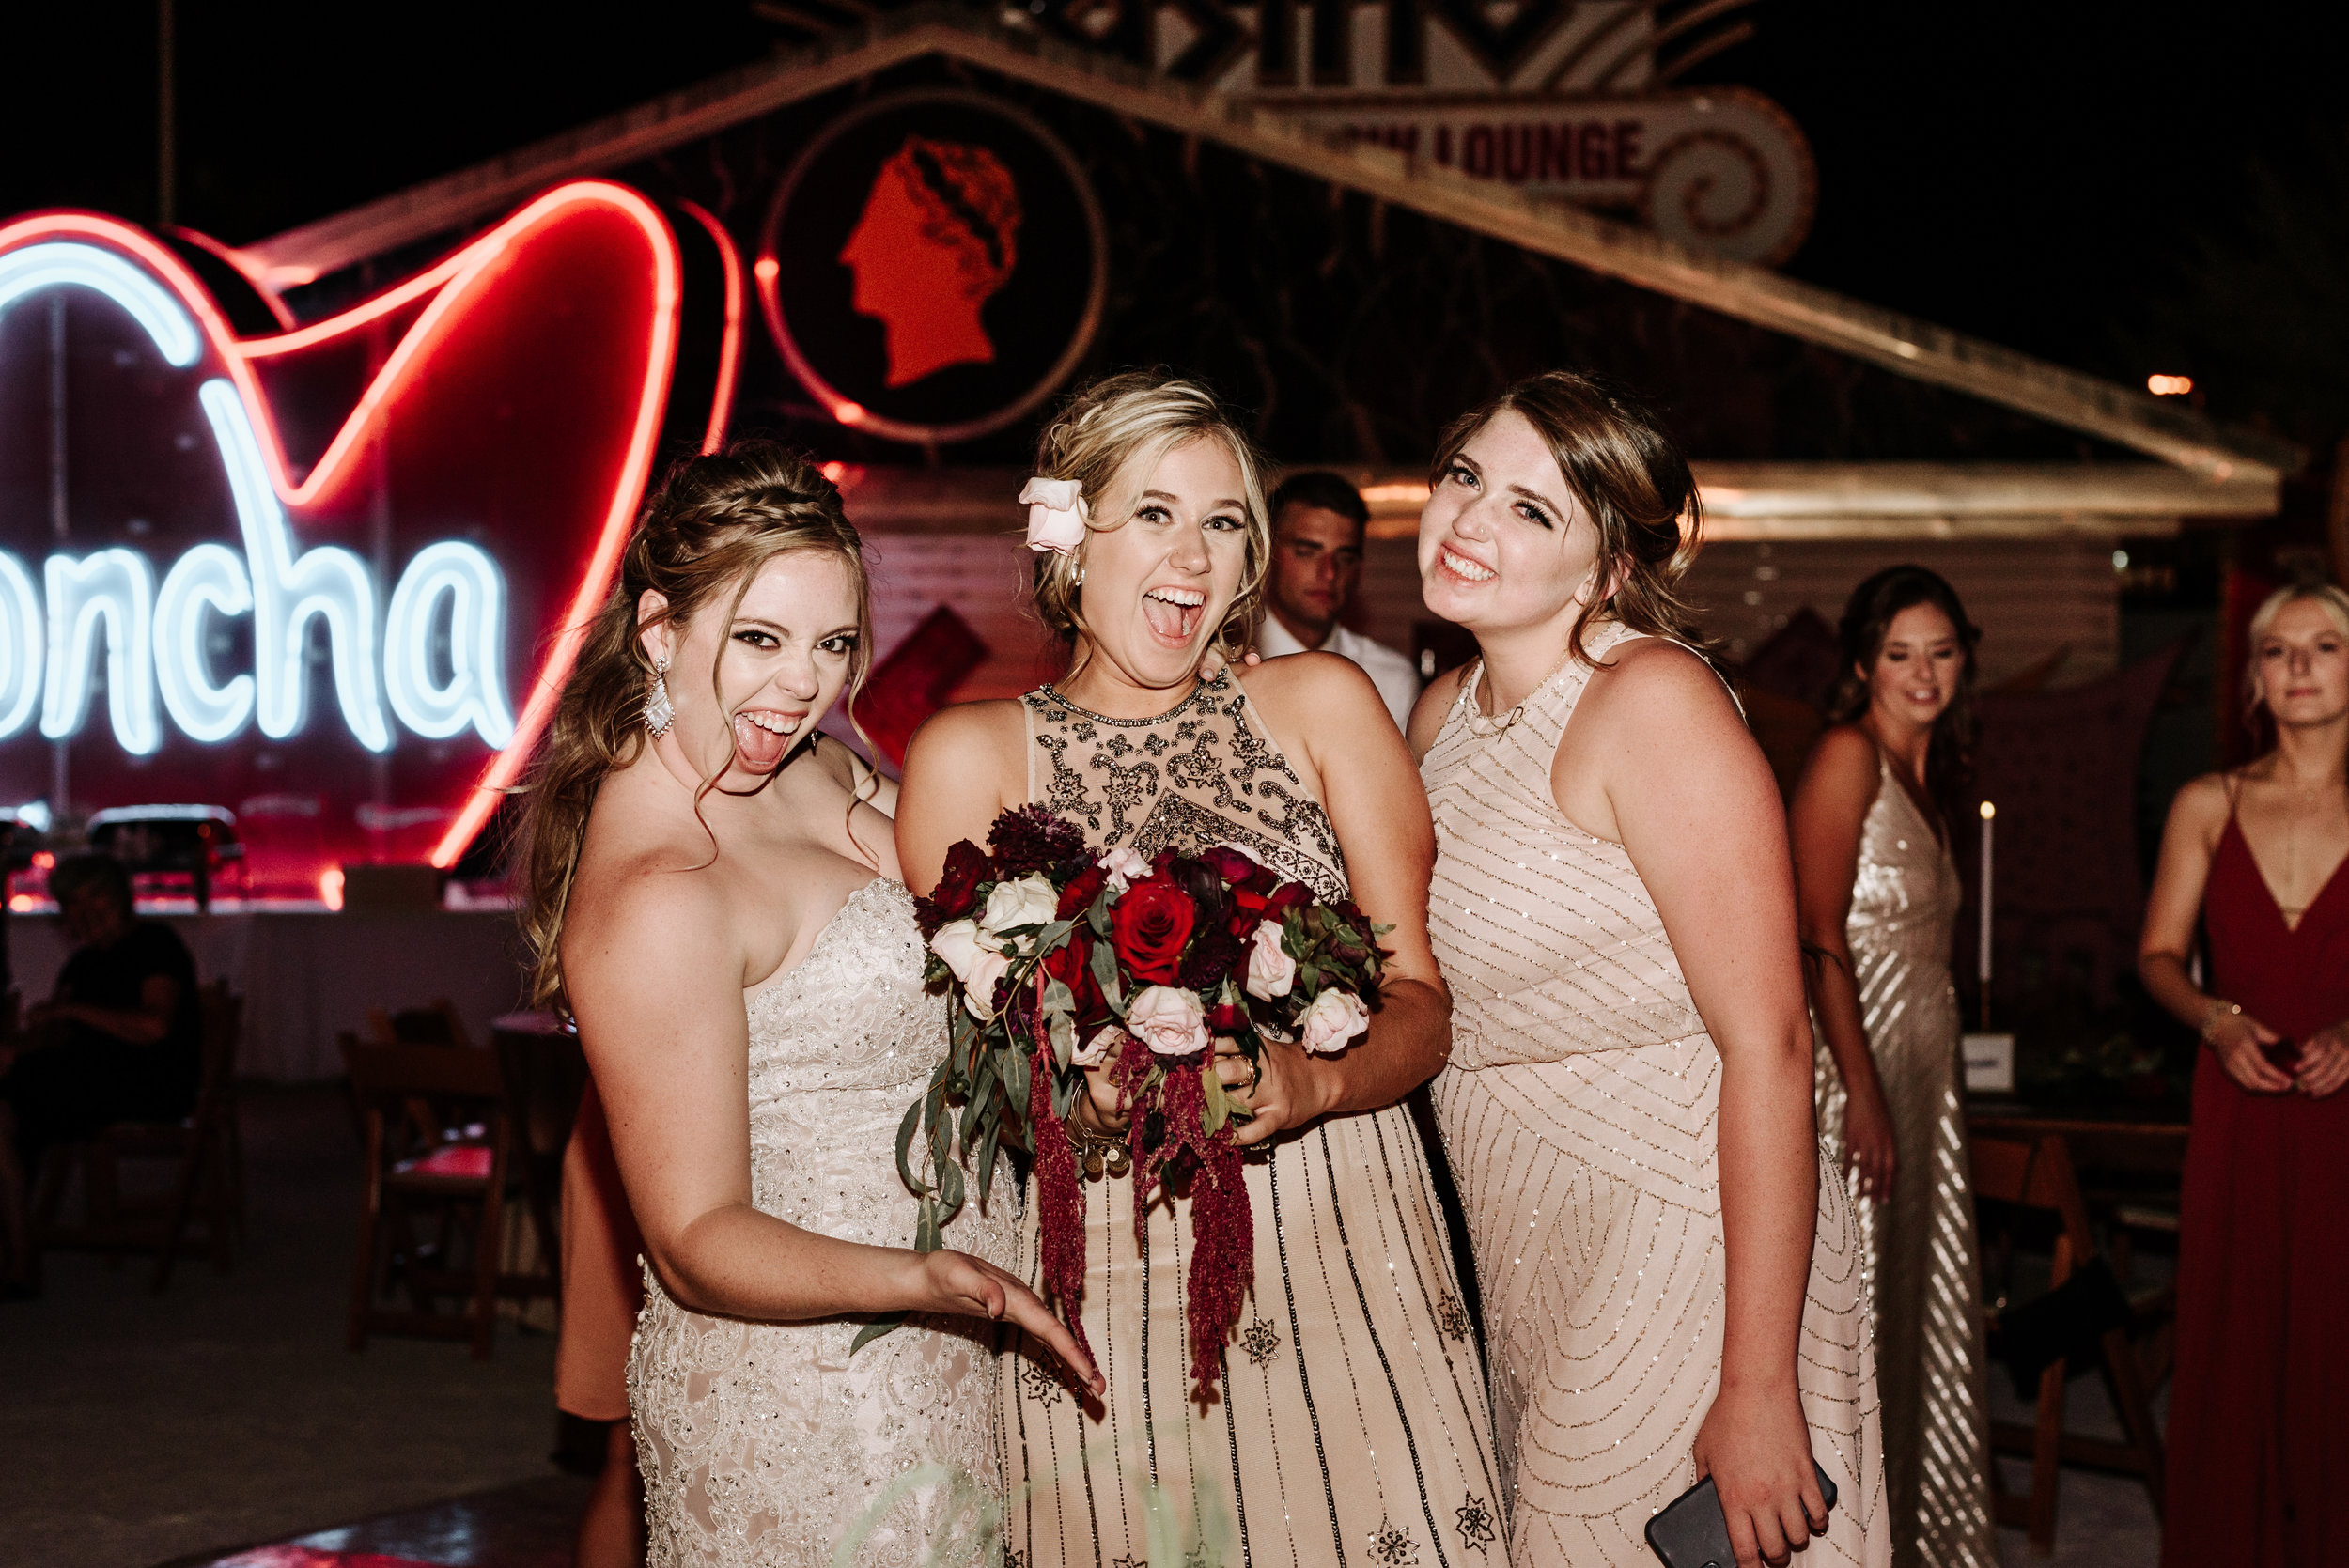 Neon-Museum-Wedding-Las-Vegas-Nevada-Golden-Nugget-Photography-by-V-Ally-and-Dan-7310.jpg